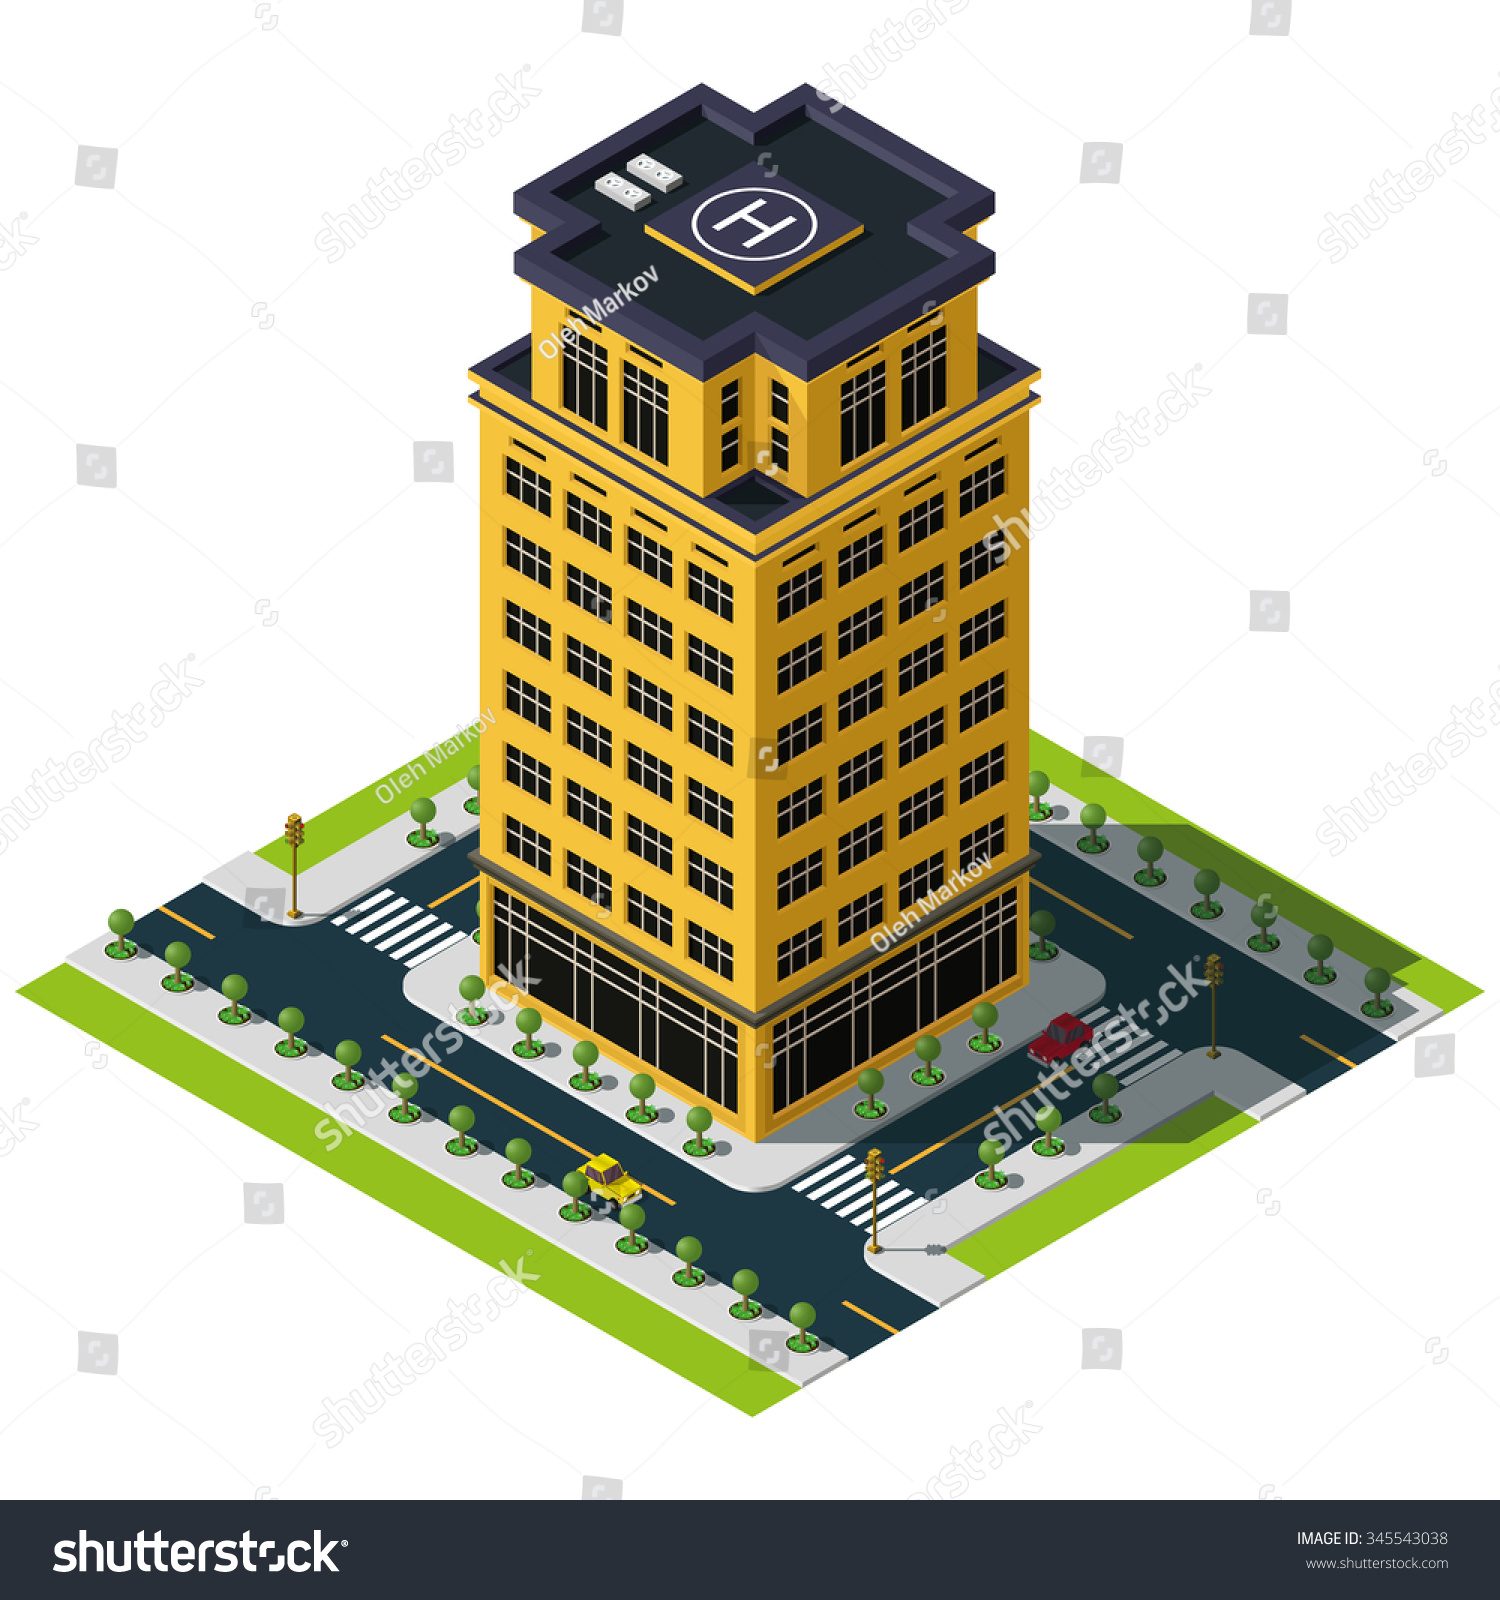 map out multiple addresses with Stock Vector Isometric City Map Bank Building Illustration Skyscraper Building Icon on Stock Photo Trinidad And Tobago Shaded Relief Map Colored According To Vegetation With Major Urban Areas moreover Stock Vector Countries And Capitals Of The Europe Vector Illustration furthermore Stock Photo Chalermprakiet Temple L ang Thailand together with Stock Photo Anatomical Body Human Skeleton Anatomy Of Human Bony System Body Surface Contour And Palpable additionally Stock Vector Arabian Peninsula.